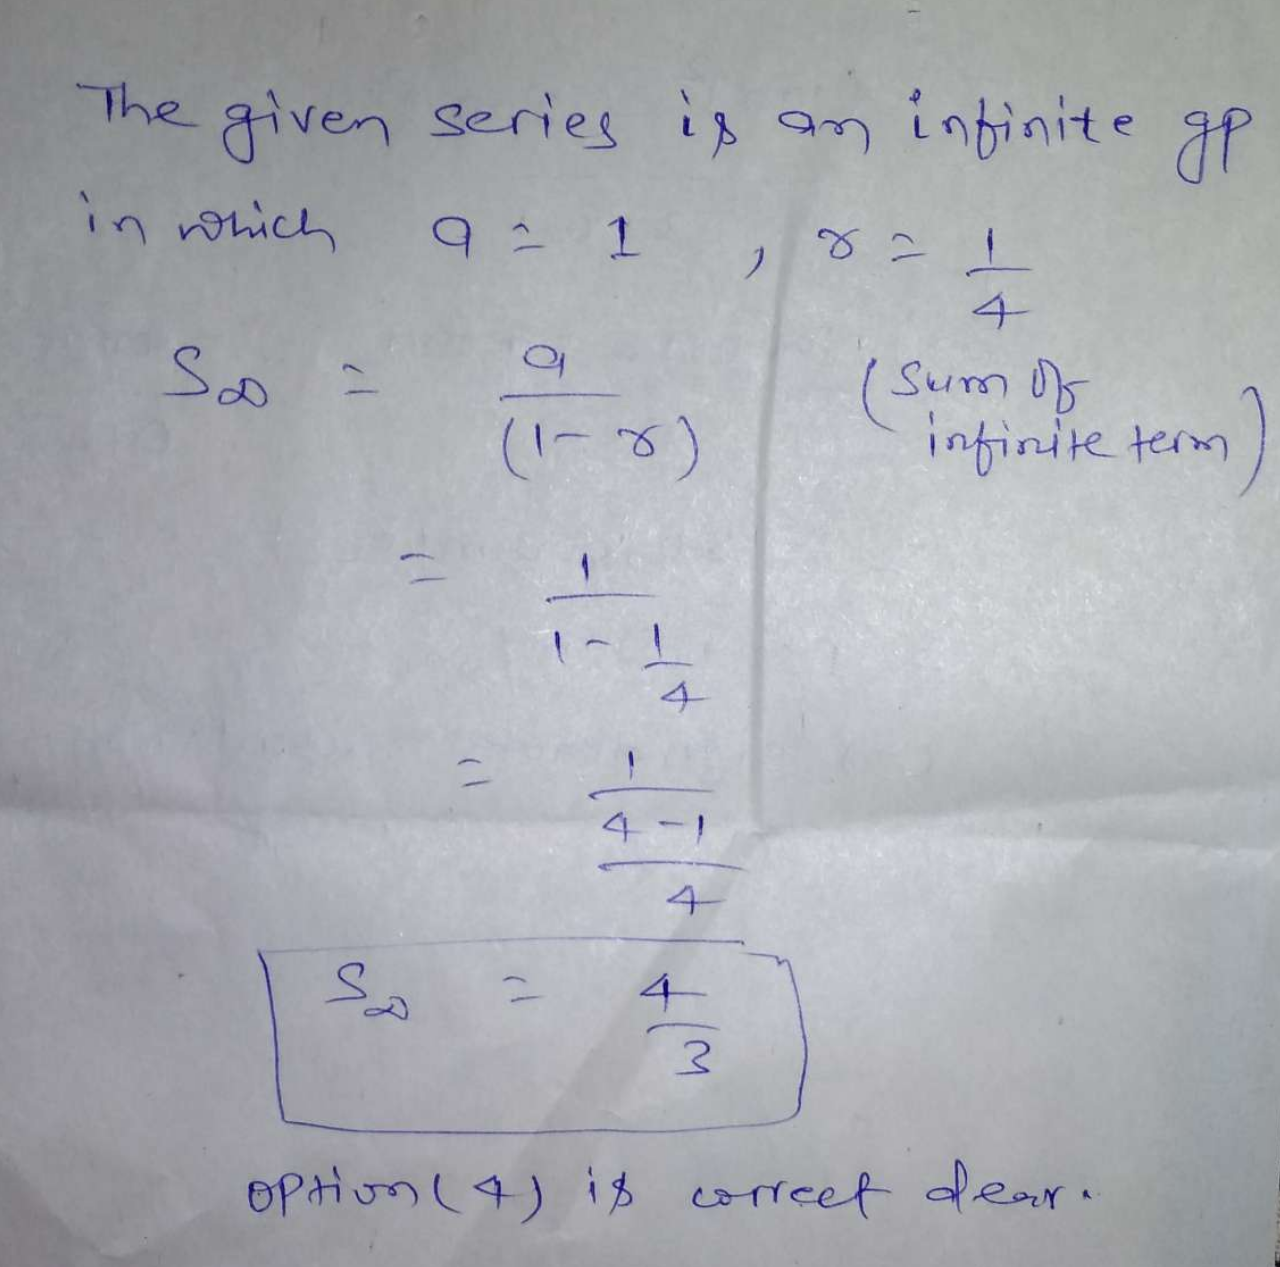 Fine sum of the series 1 + 1/4 + 1/16 + 1/64+……∞ is